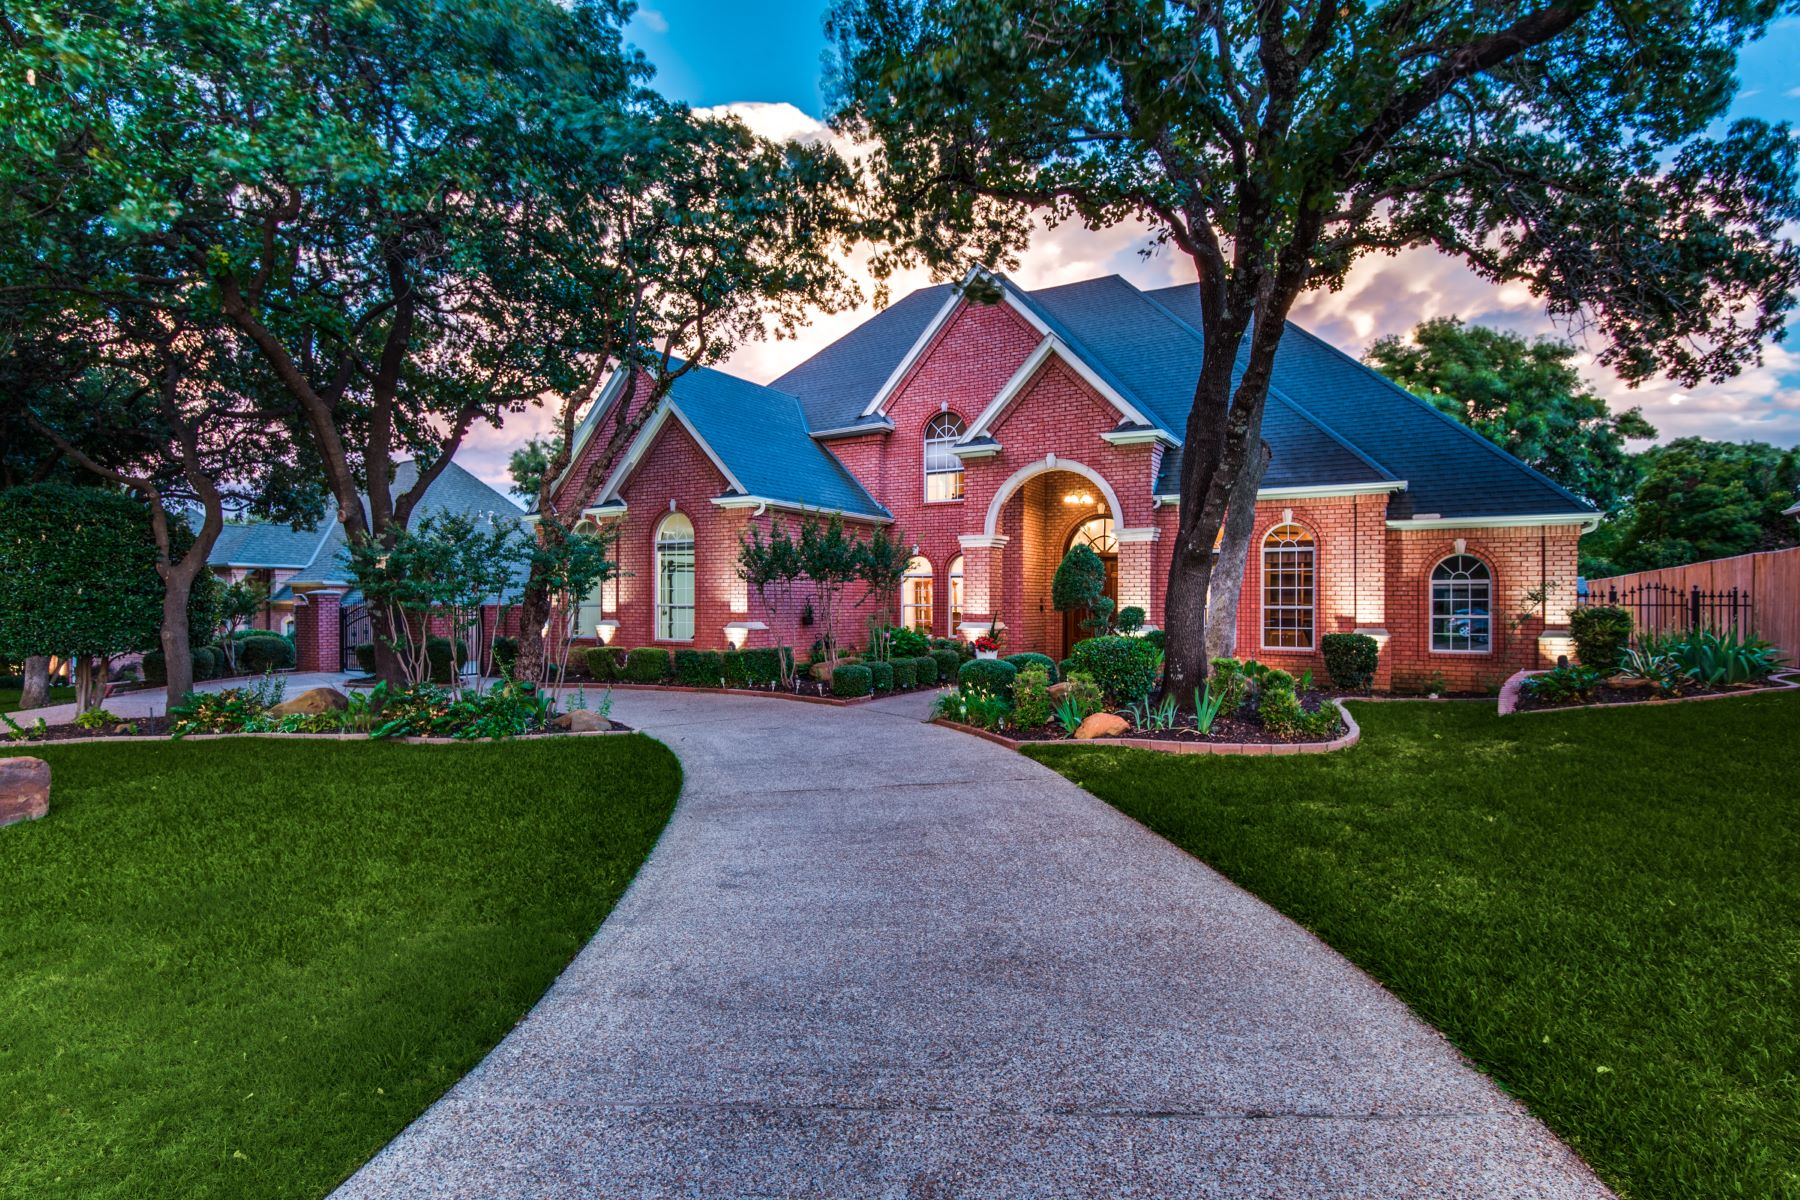 Single Family Homes for Sale at Colleyville Traditional 2905 Edgewood Lane Colleyville, Texas 76034 United States